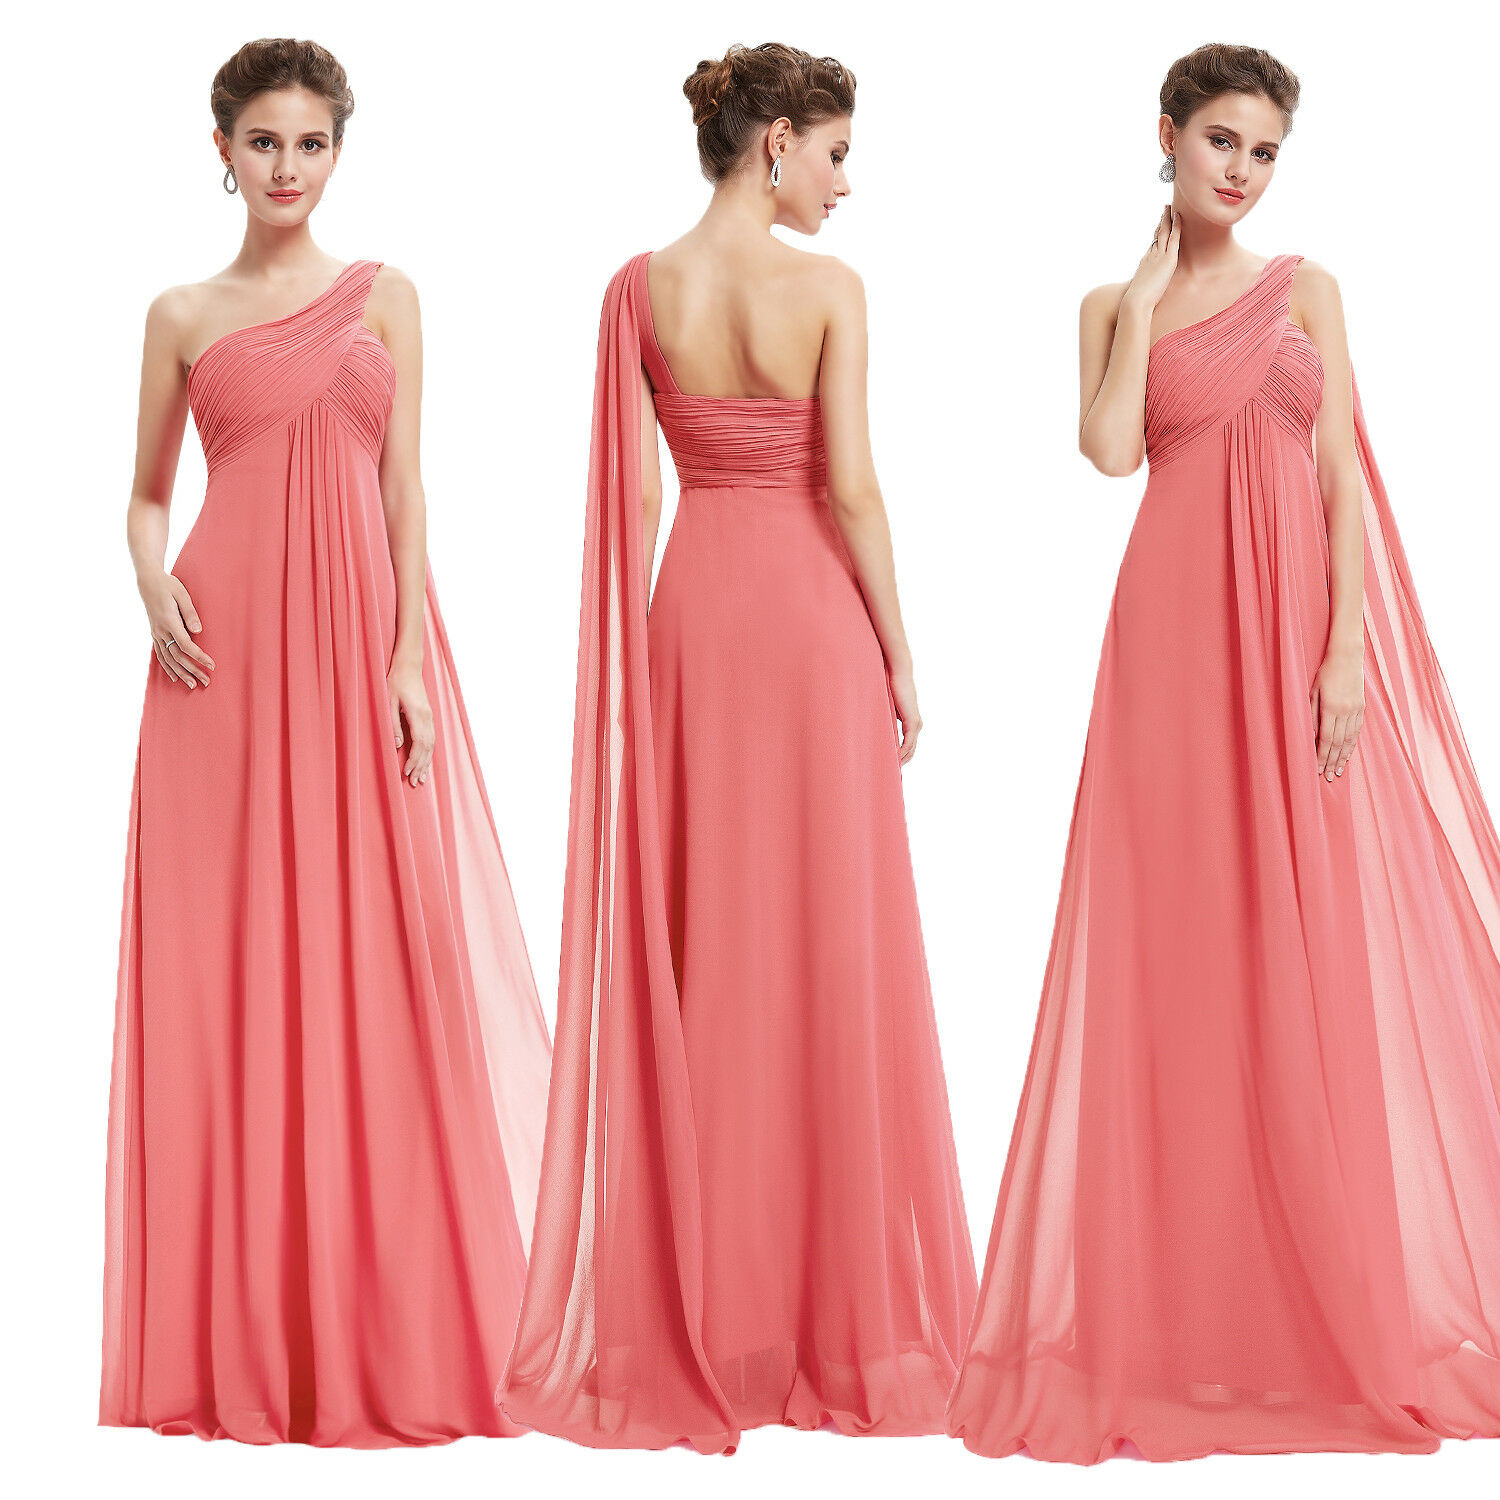 Ever-Pretty UK One-shoulder Coral Bridesmaid Dresses Long Party Prom Gowns 09816